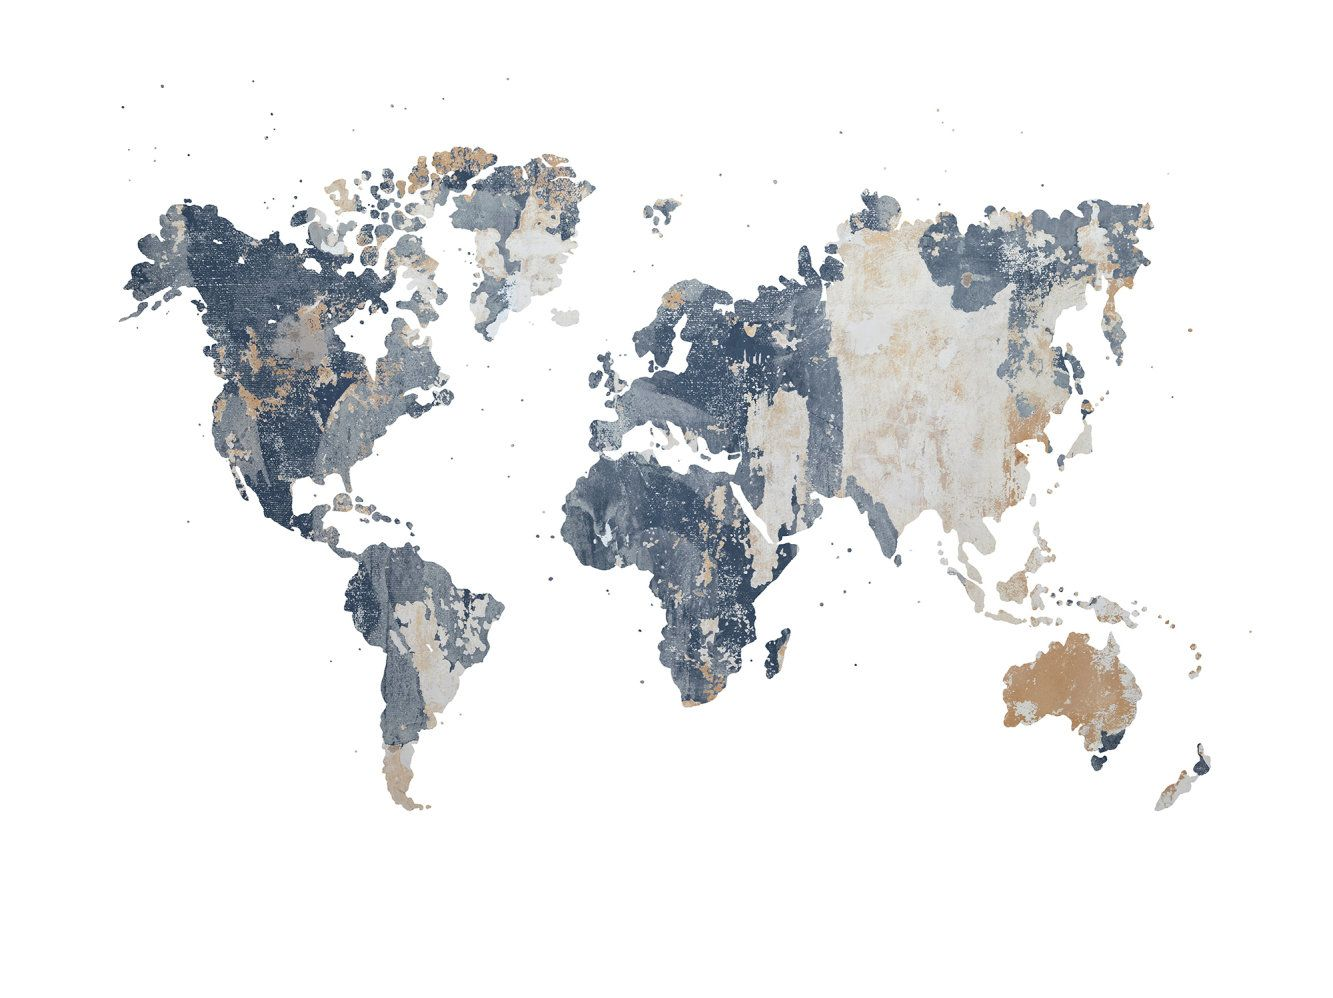 Your Own World, Battered Wall in 2020 World map